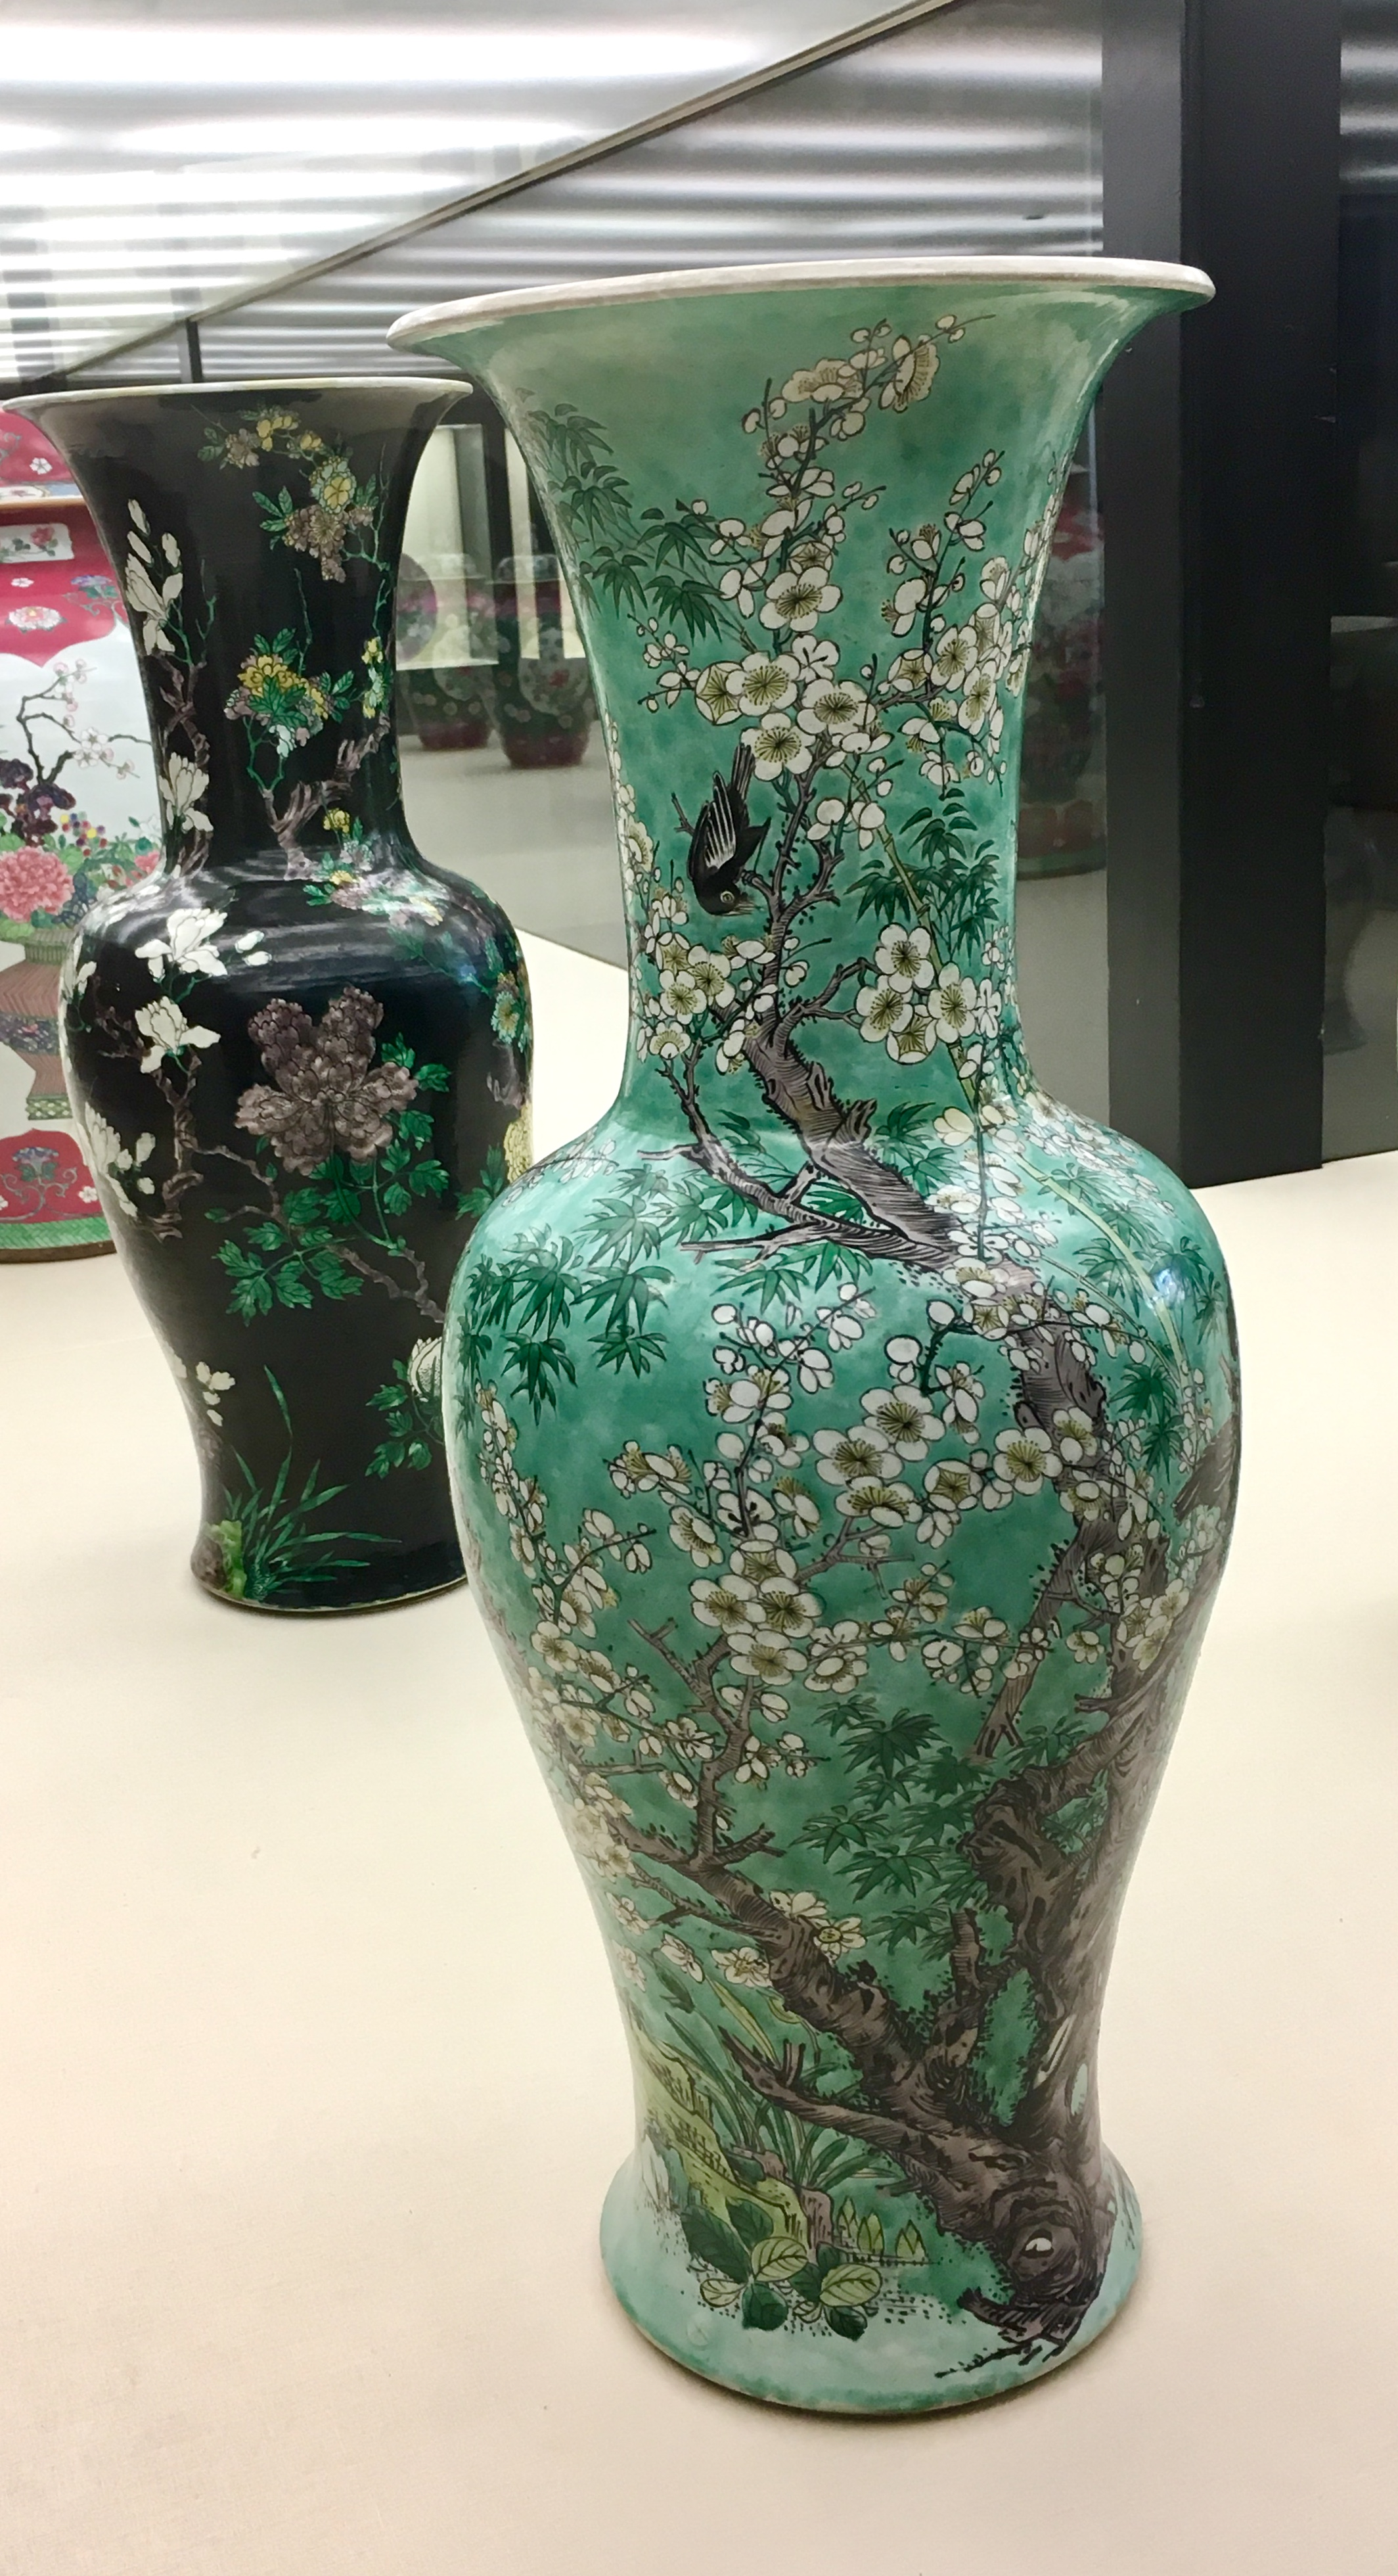 """A pair of Jars from early 18th century, China, Kangxi period, Qing dynasty. Porcelain with """"famille verte"""" enamels. In the Museu Calouste Gulbenkian, Lisboa. (Photograph J. Cook)"""